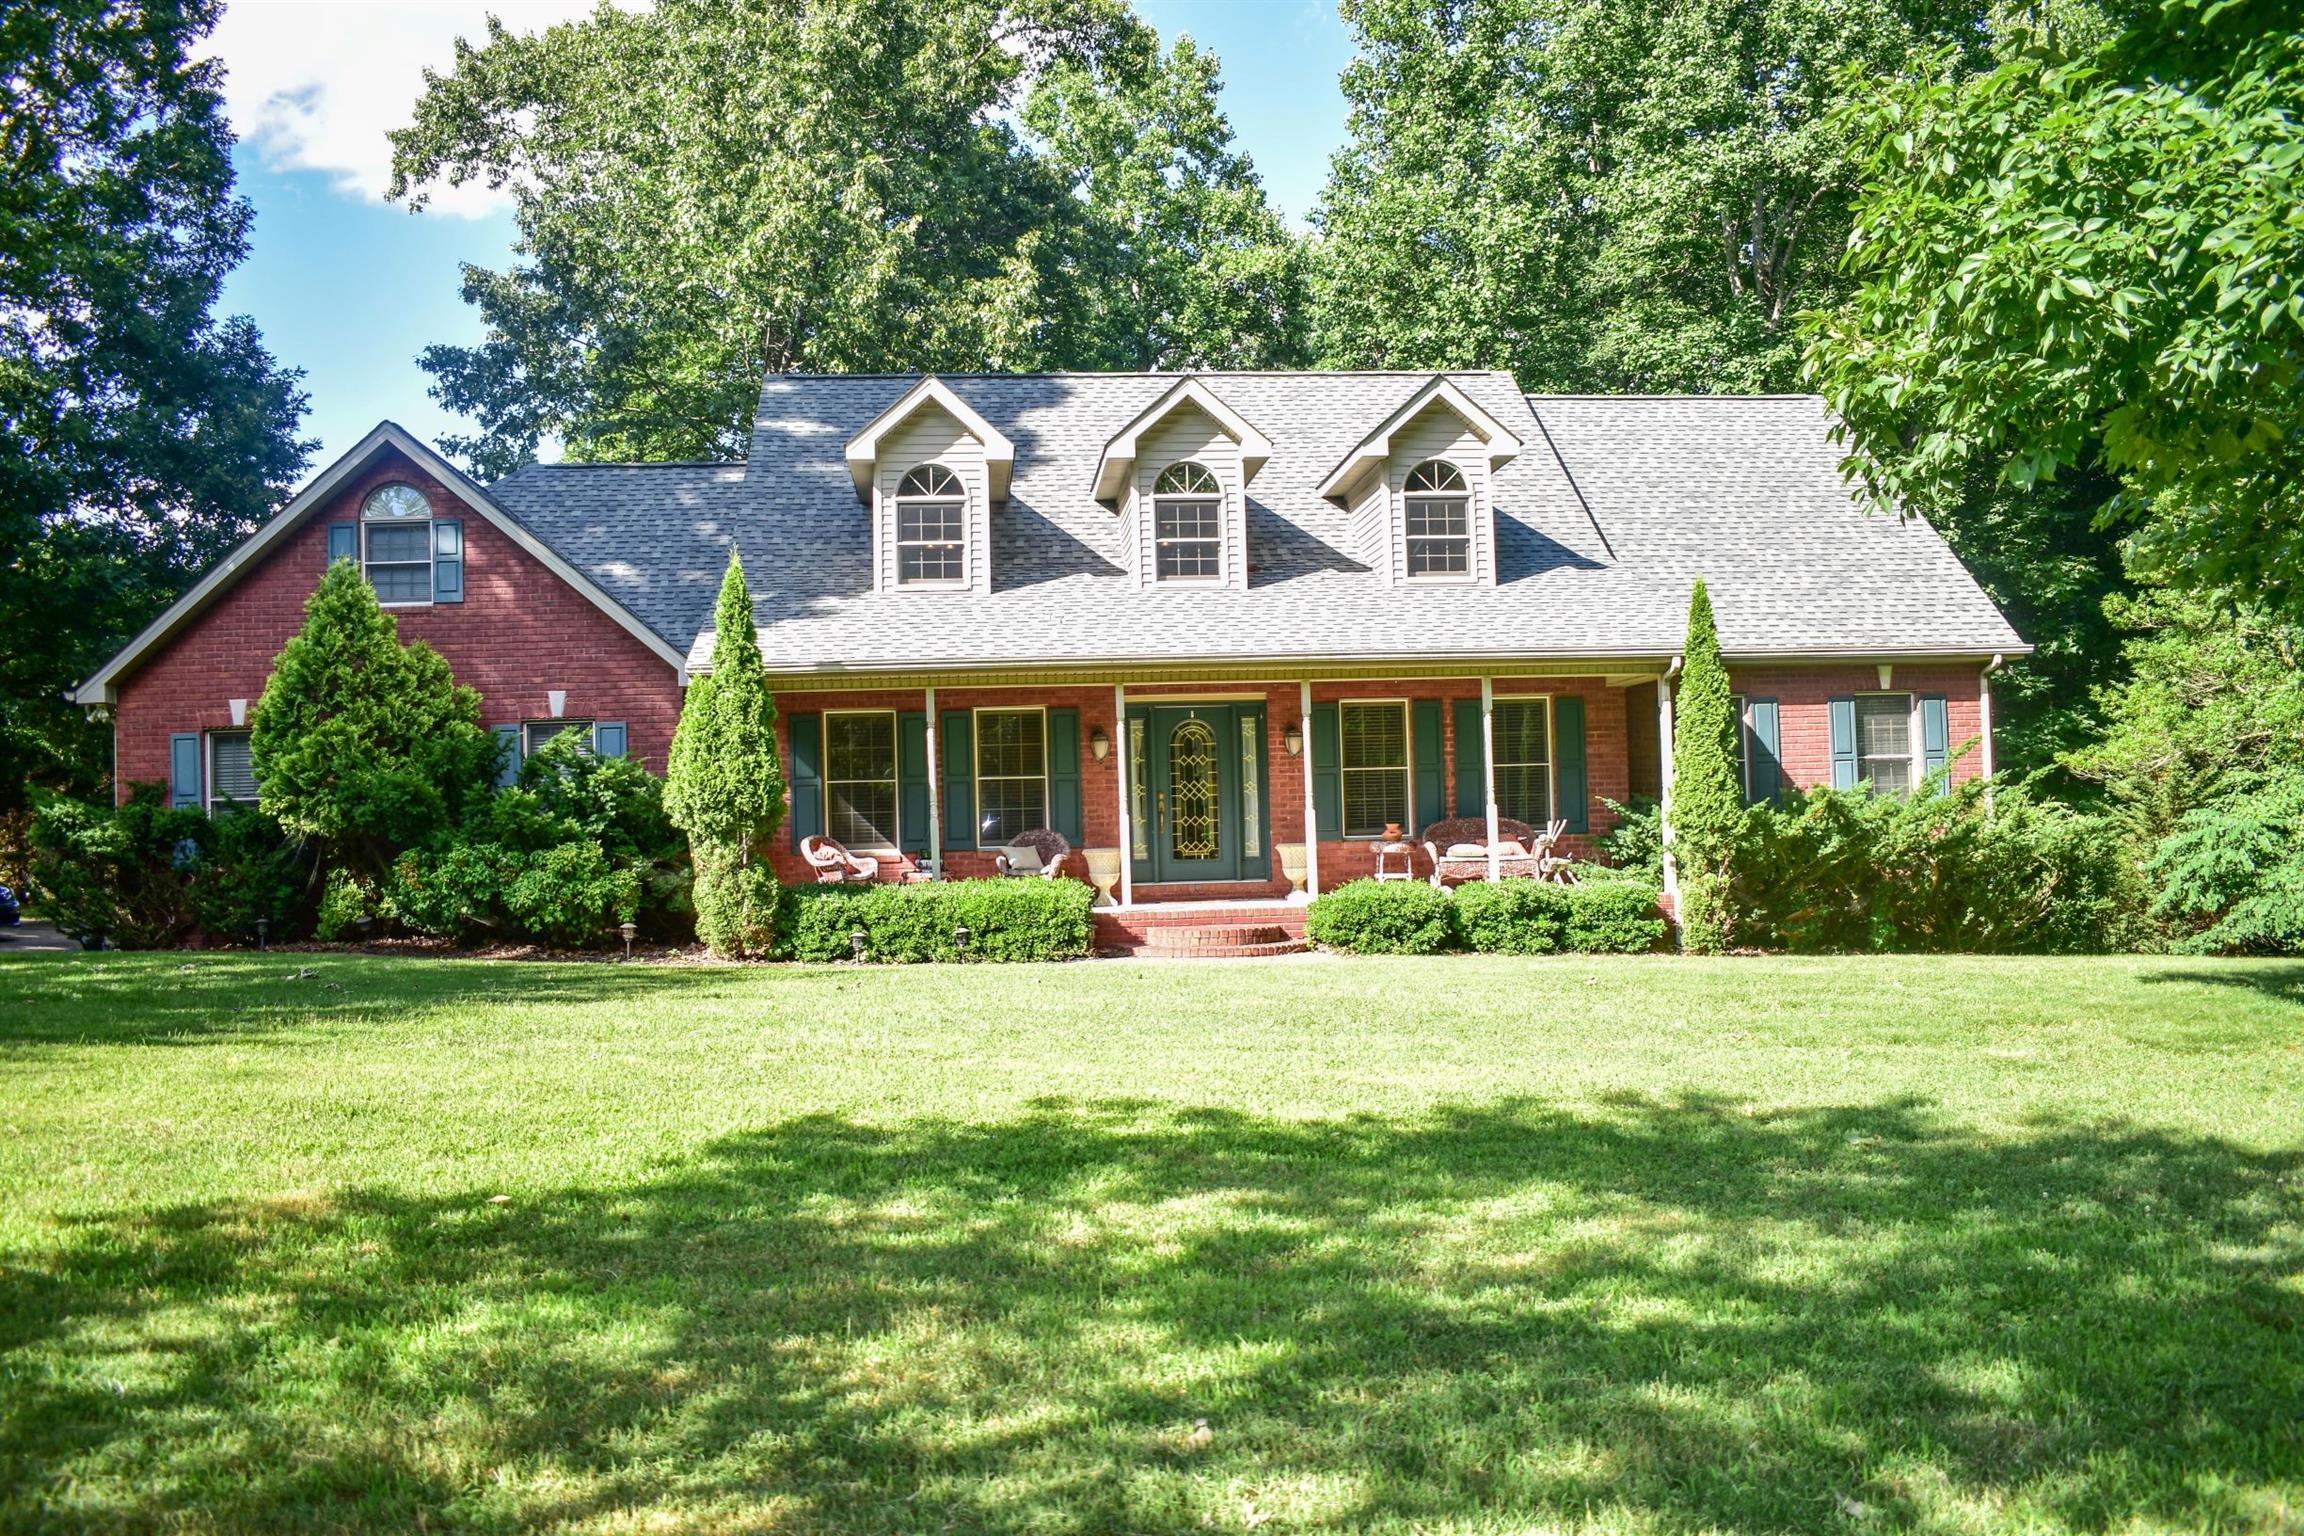 496 Perrys Pl, Lynchburg, TN 37352 - Lynchburg, TN real estate listing